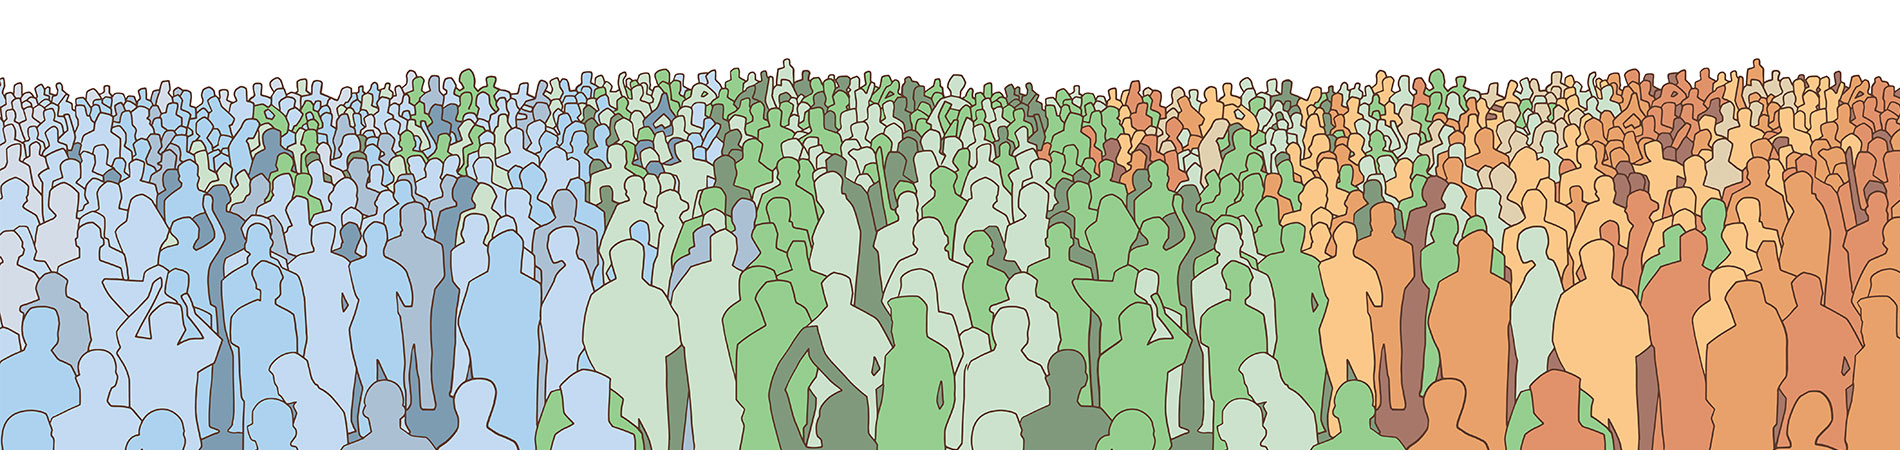 Population health signified by a large crowd of people.